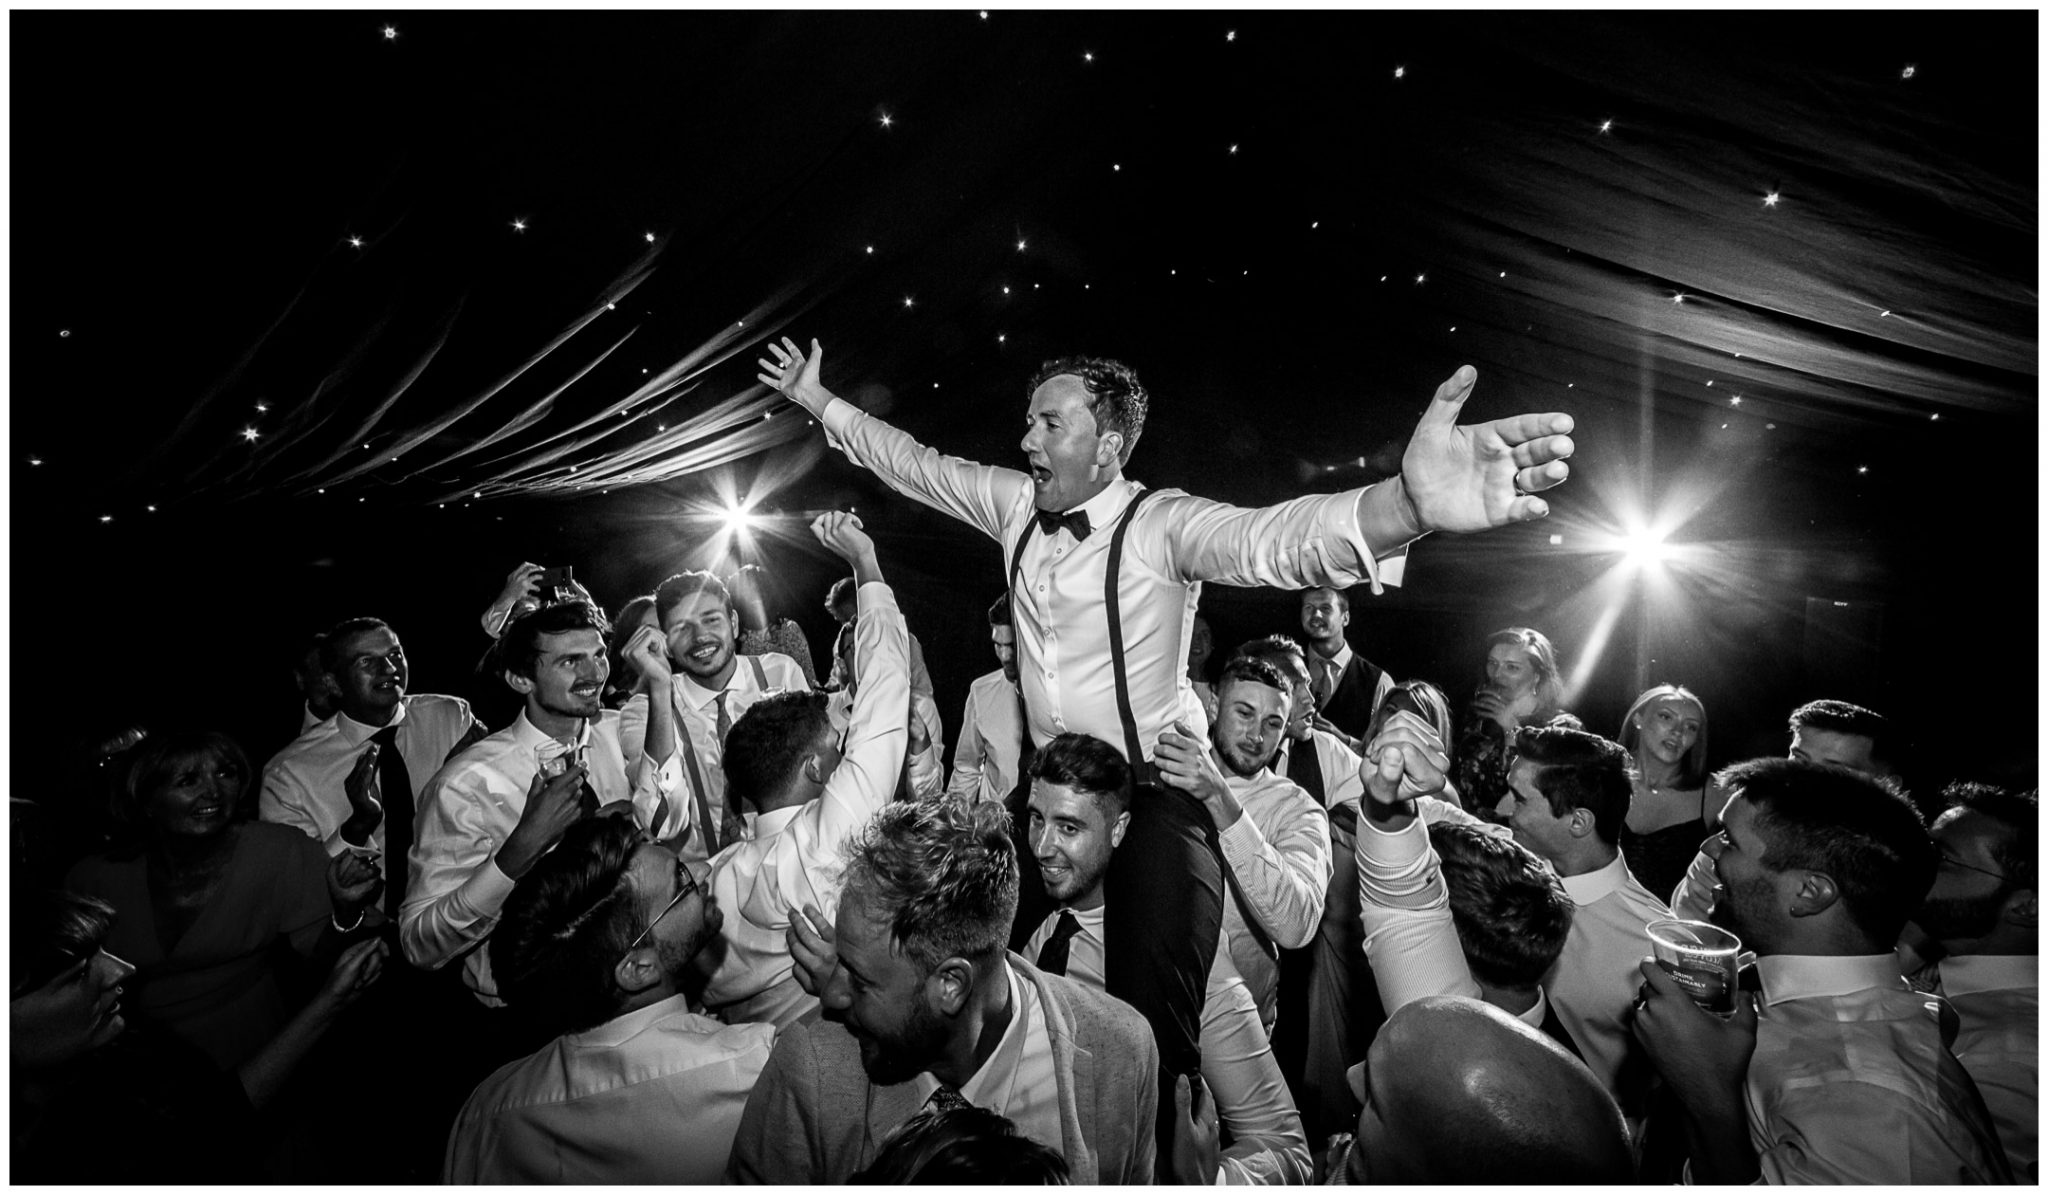 The groom is lifted onto his friends' shoulders during the evening party